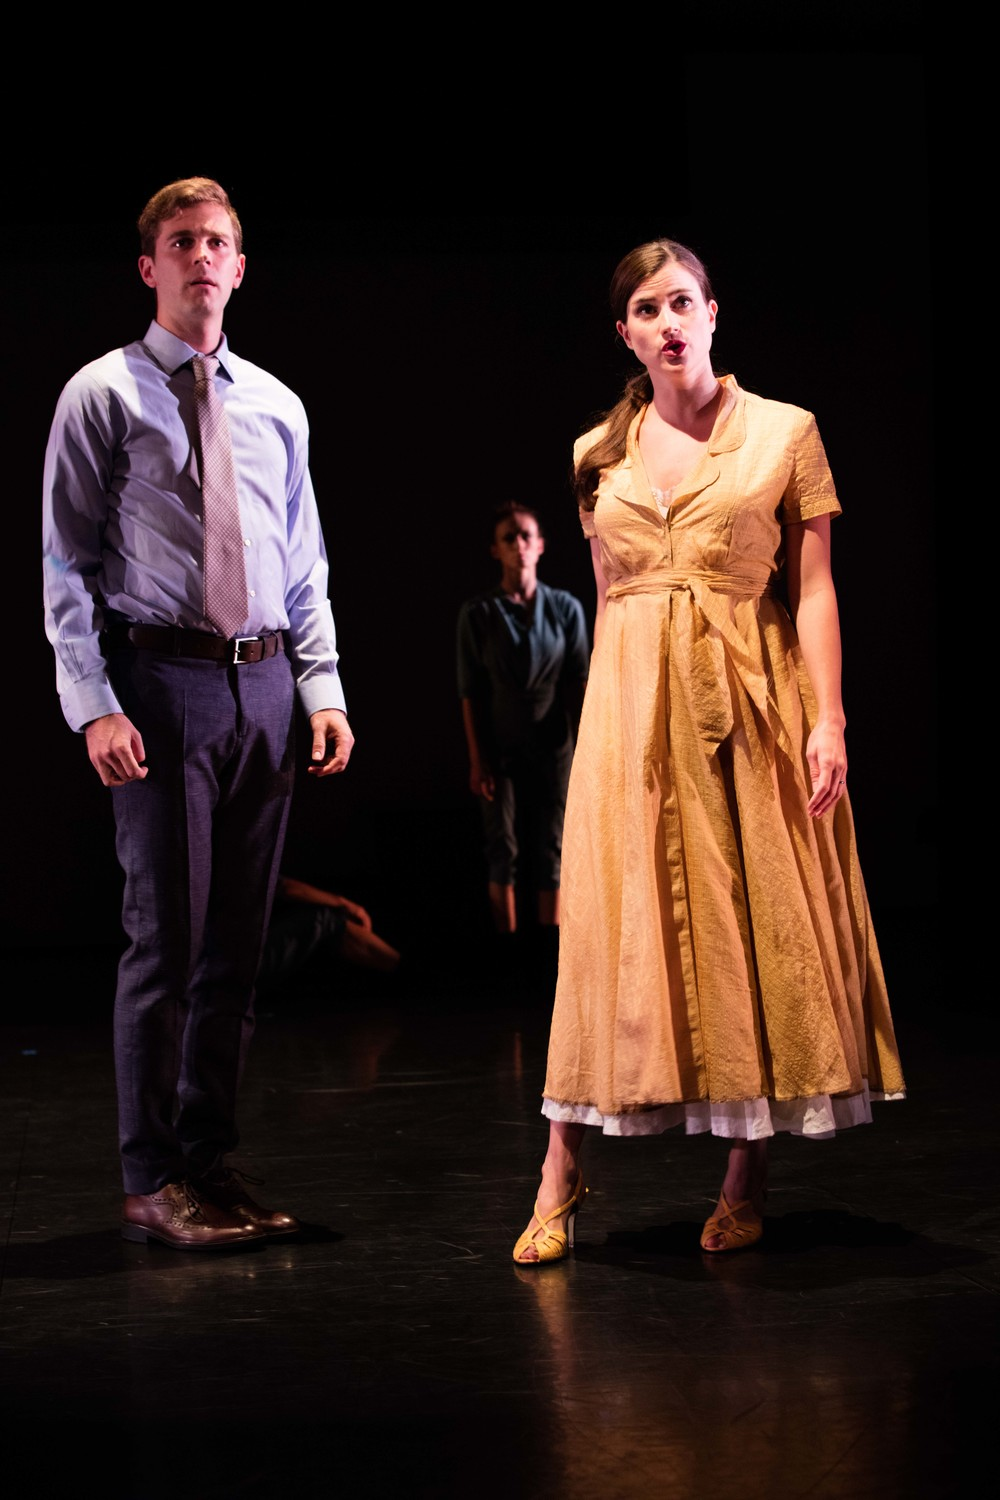 Patrick Massey and Anna Ward/photo by Daniel J. van Ackere